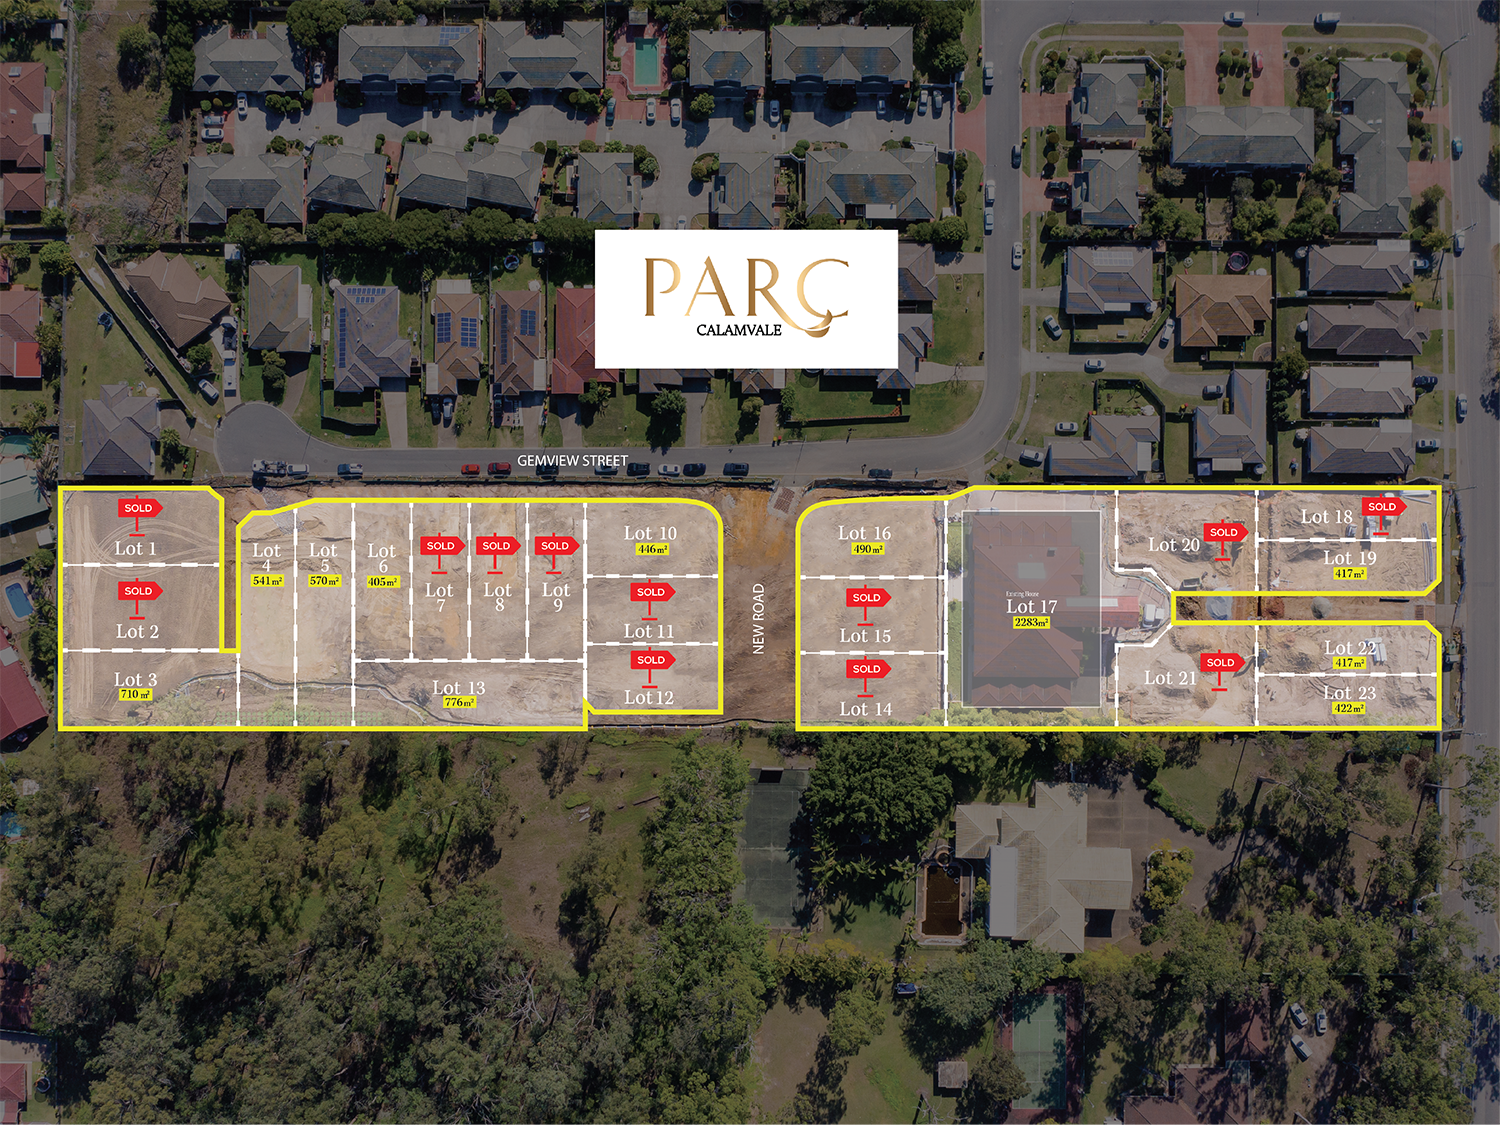 PARC Calamvale over 50% sold!